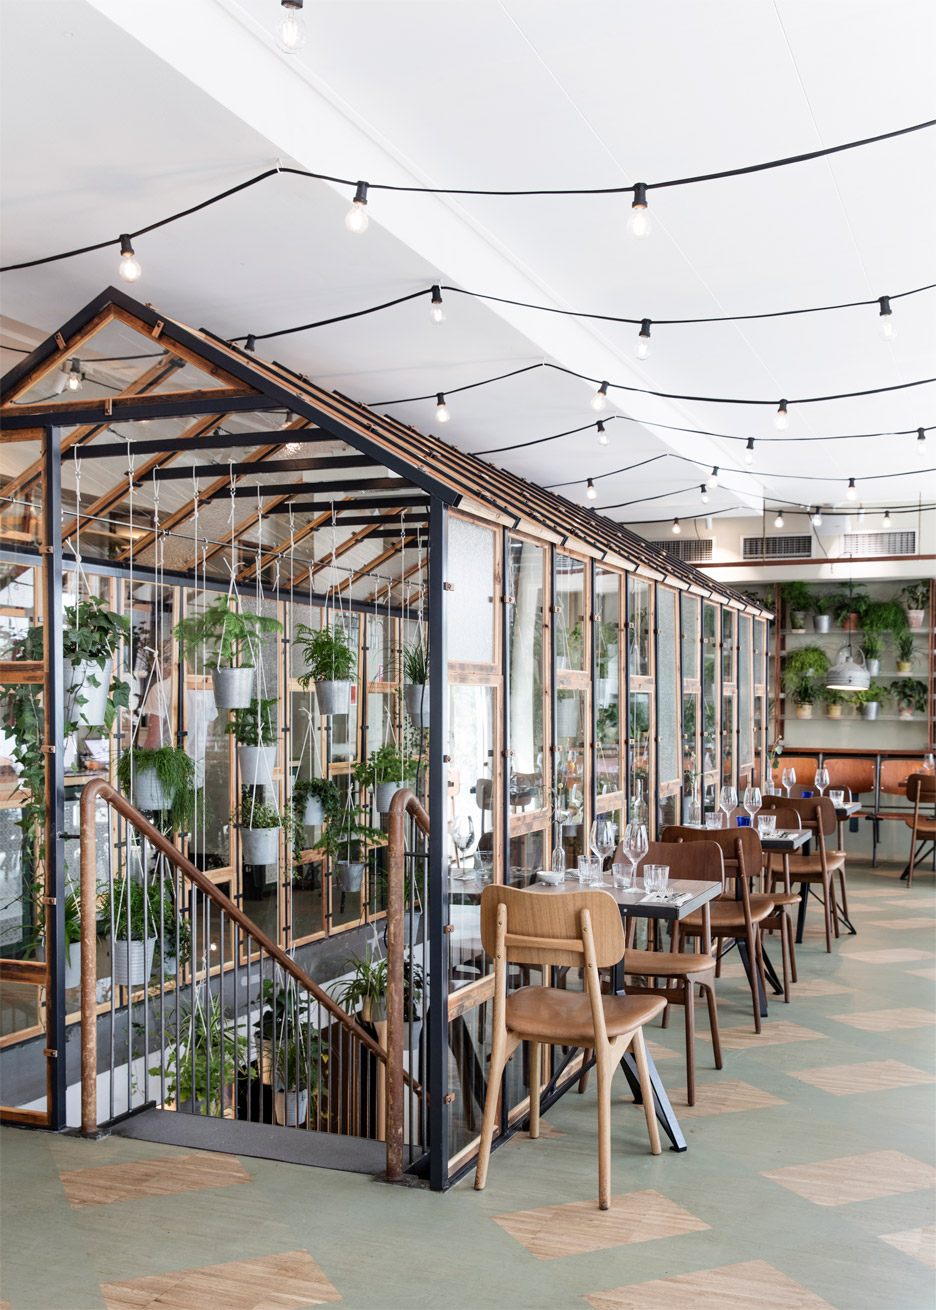 Danish design studio creates an indoor garden for a